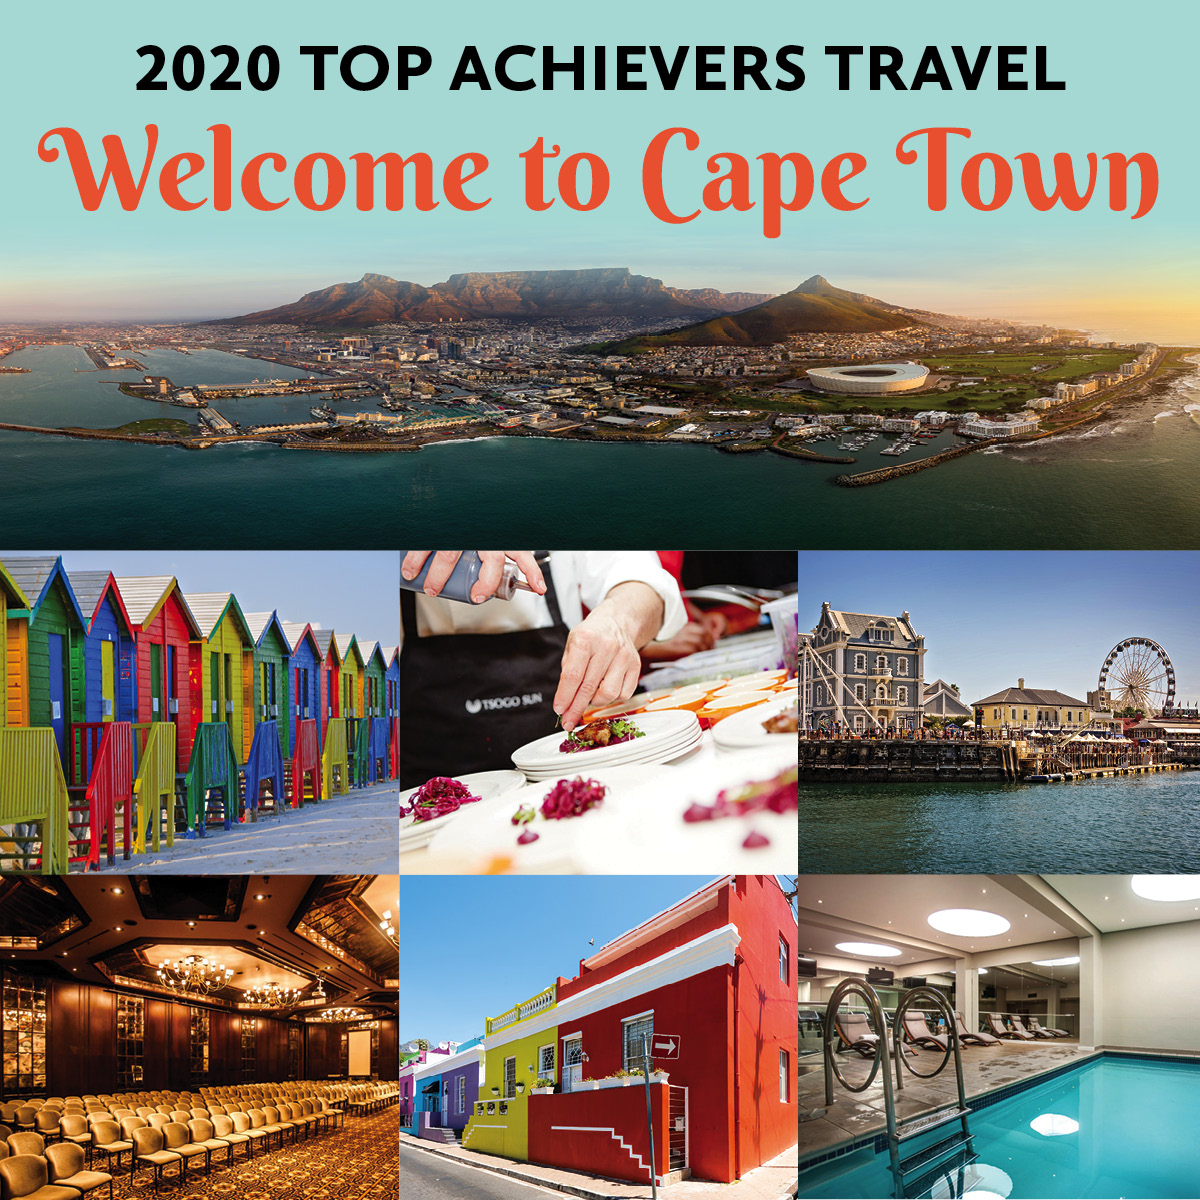 Images of Cape Town